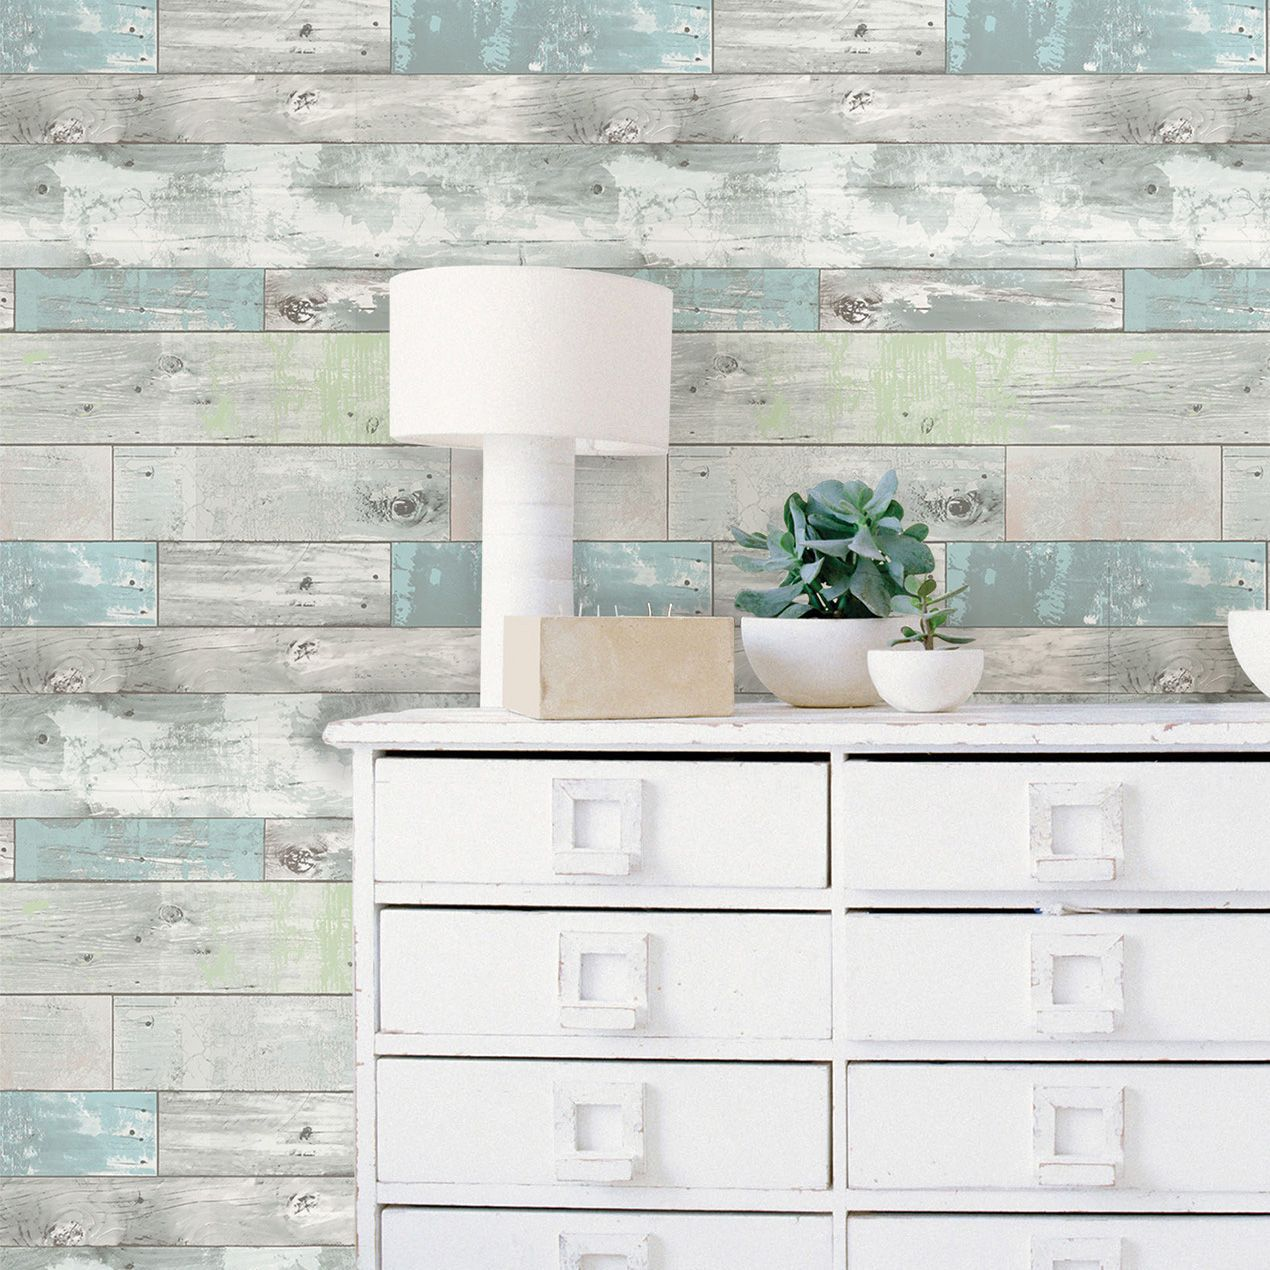 Self Adhesive Wall Paper self-adhesive wallpaper | wallpaper & wall coverings | diy at b&q